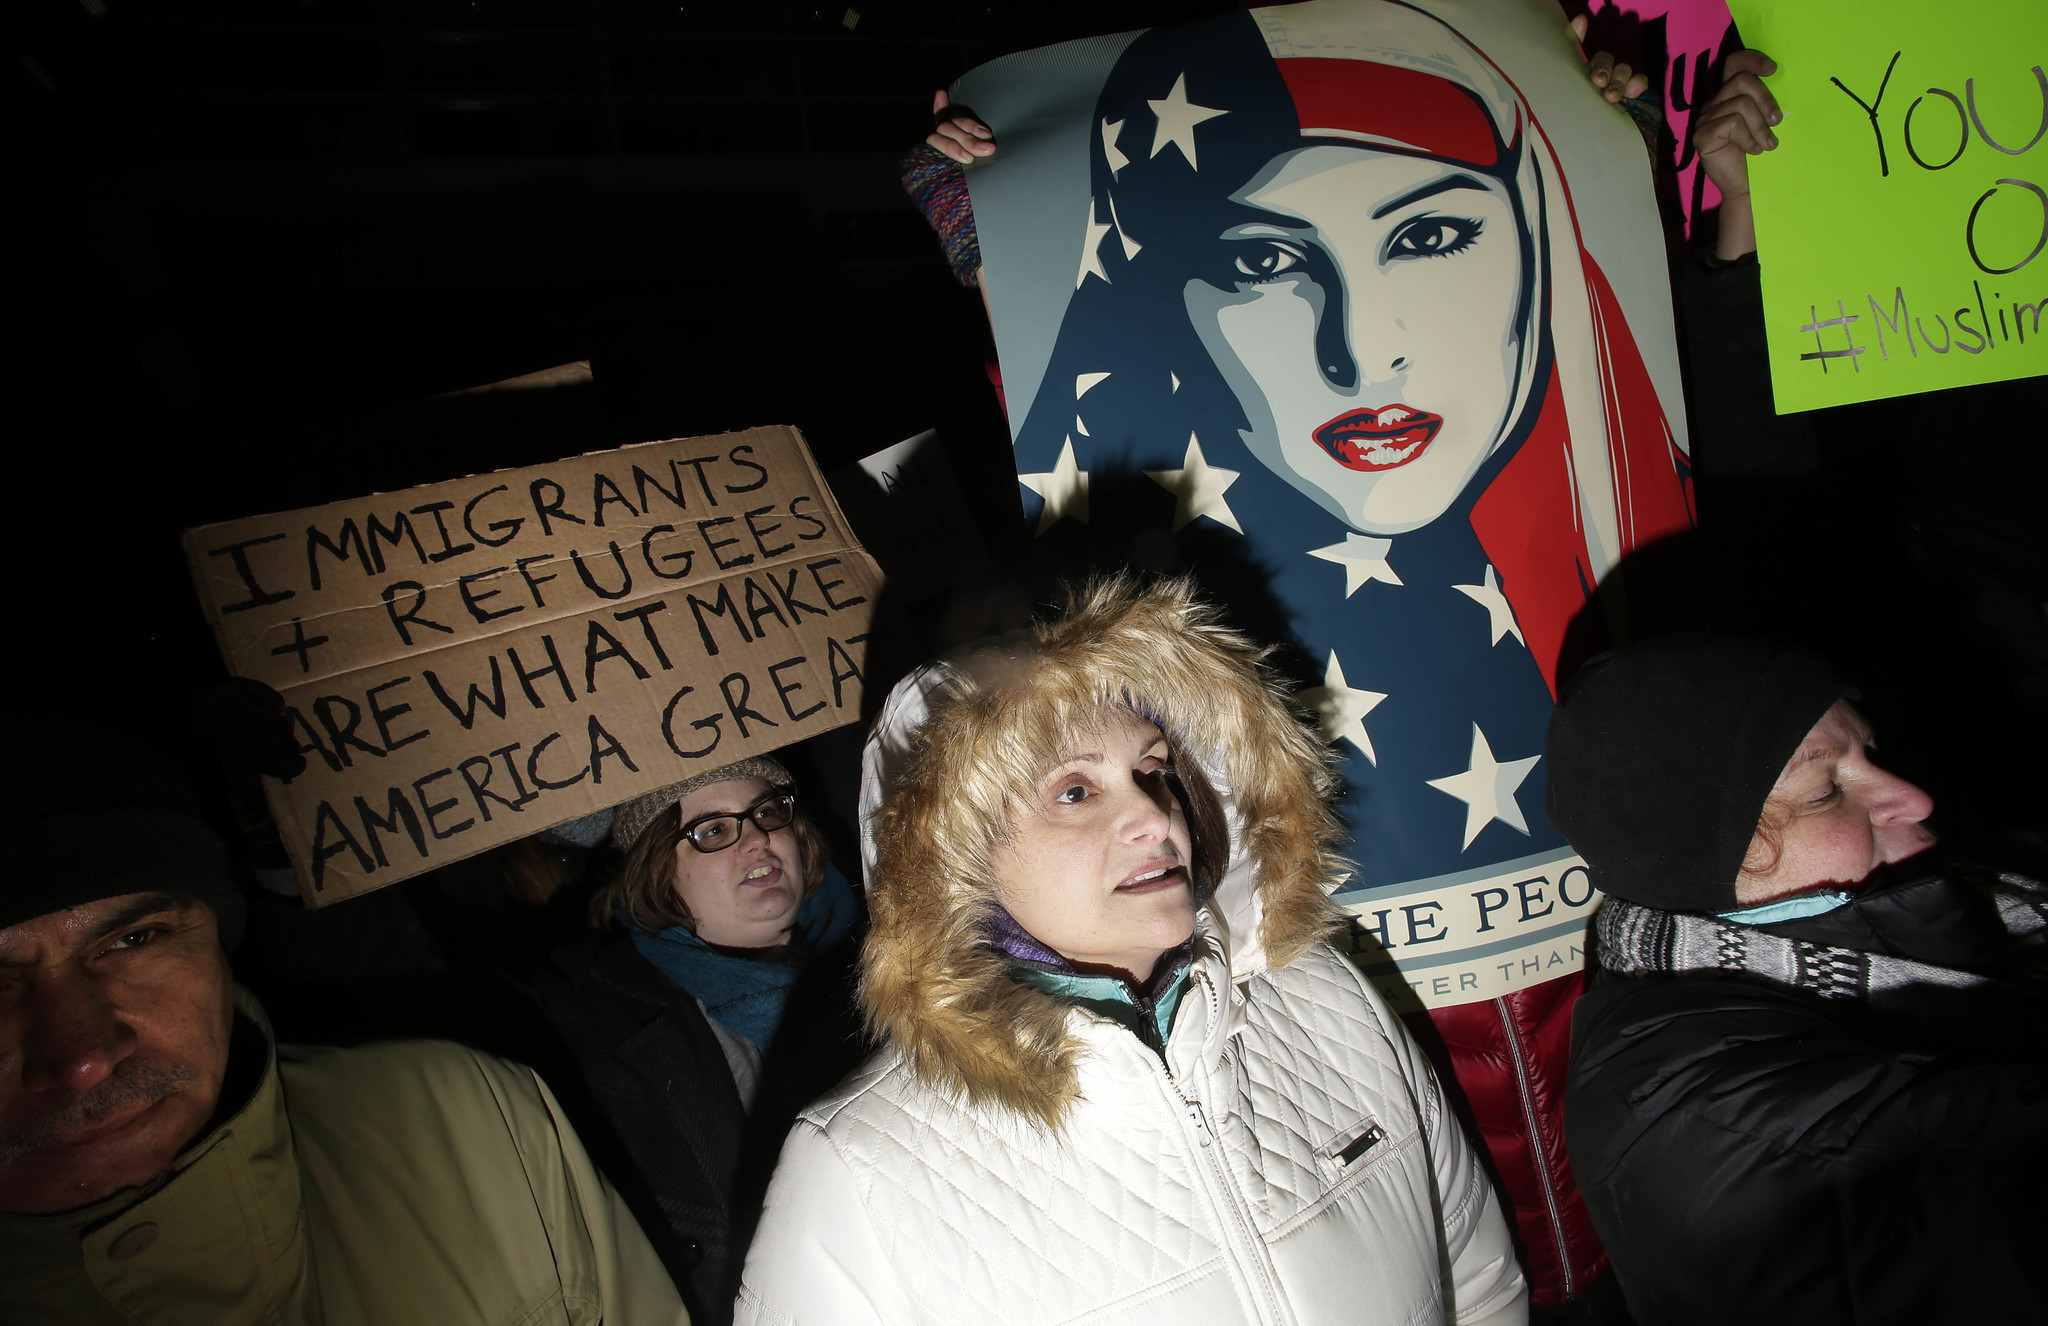 Trump's refugee order: Which side are you on? - Chicago ...